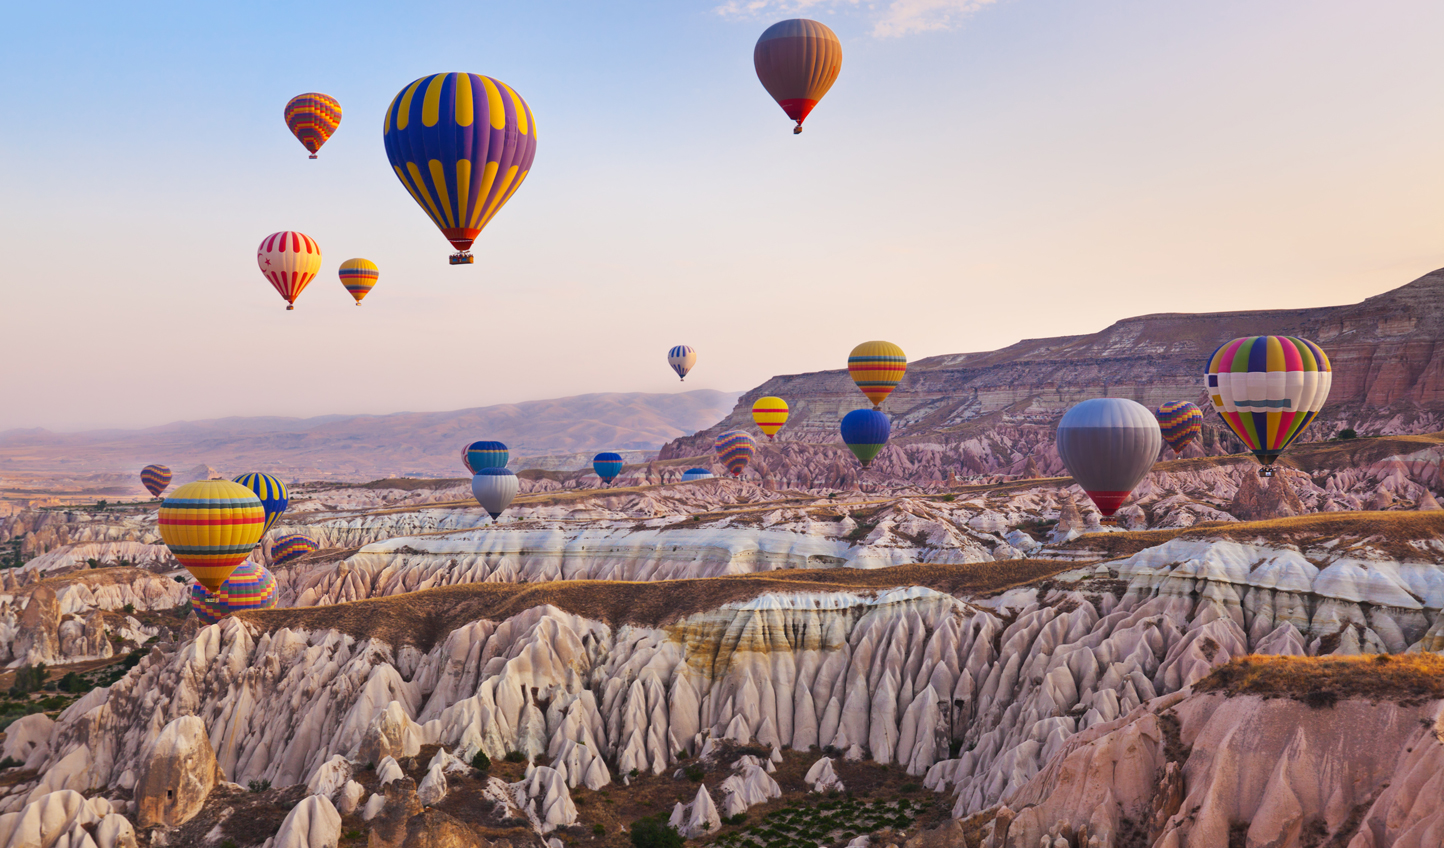 Ride the skies over Cappadocia